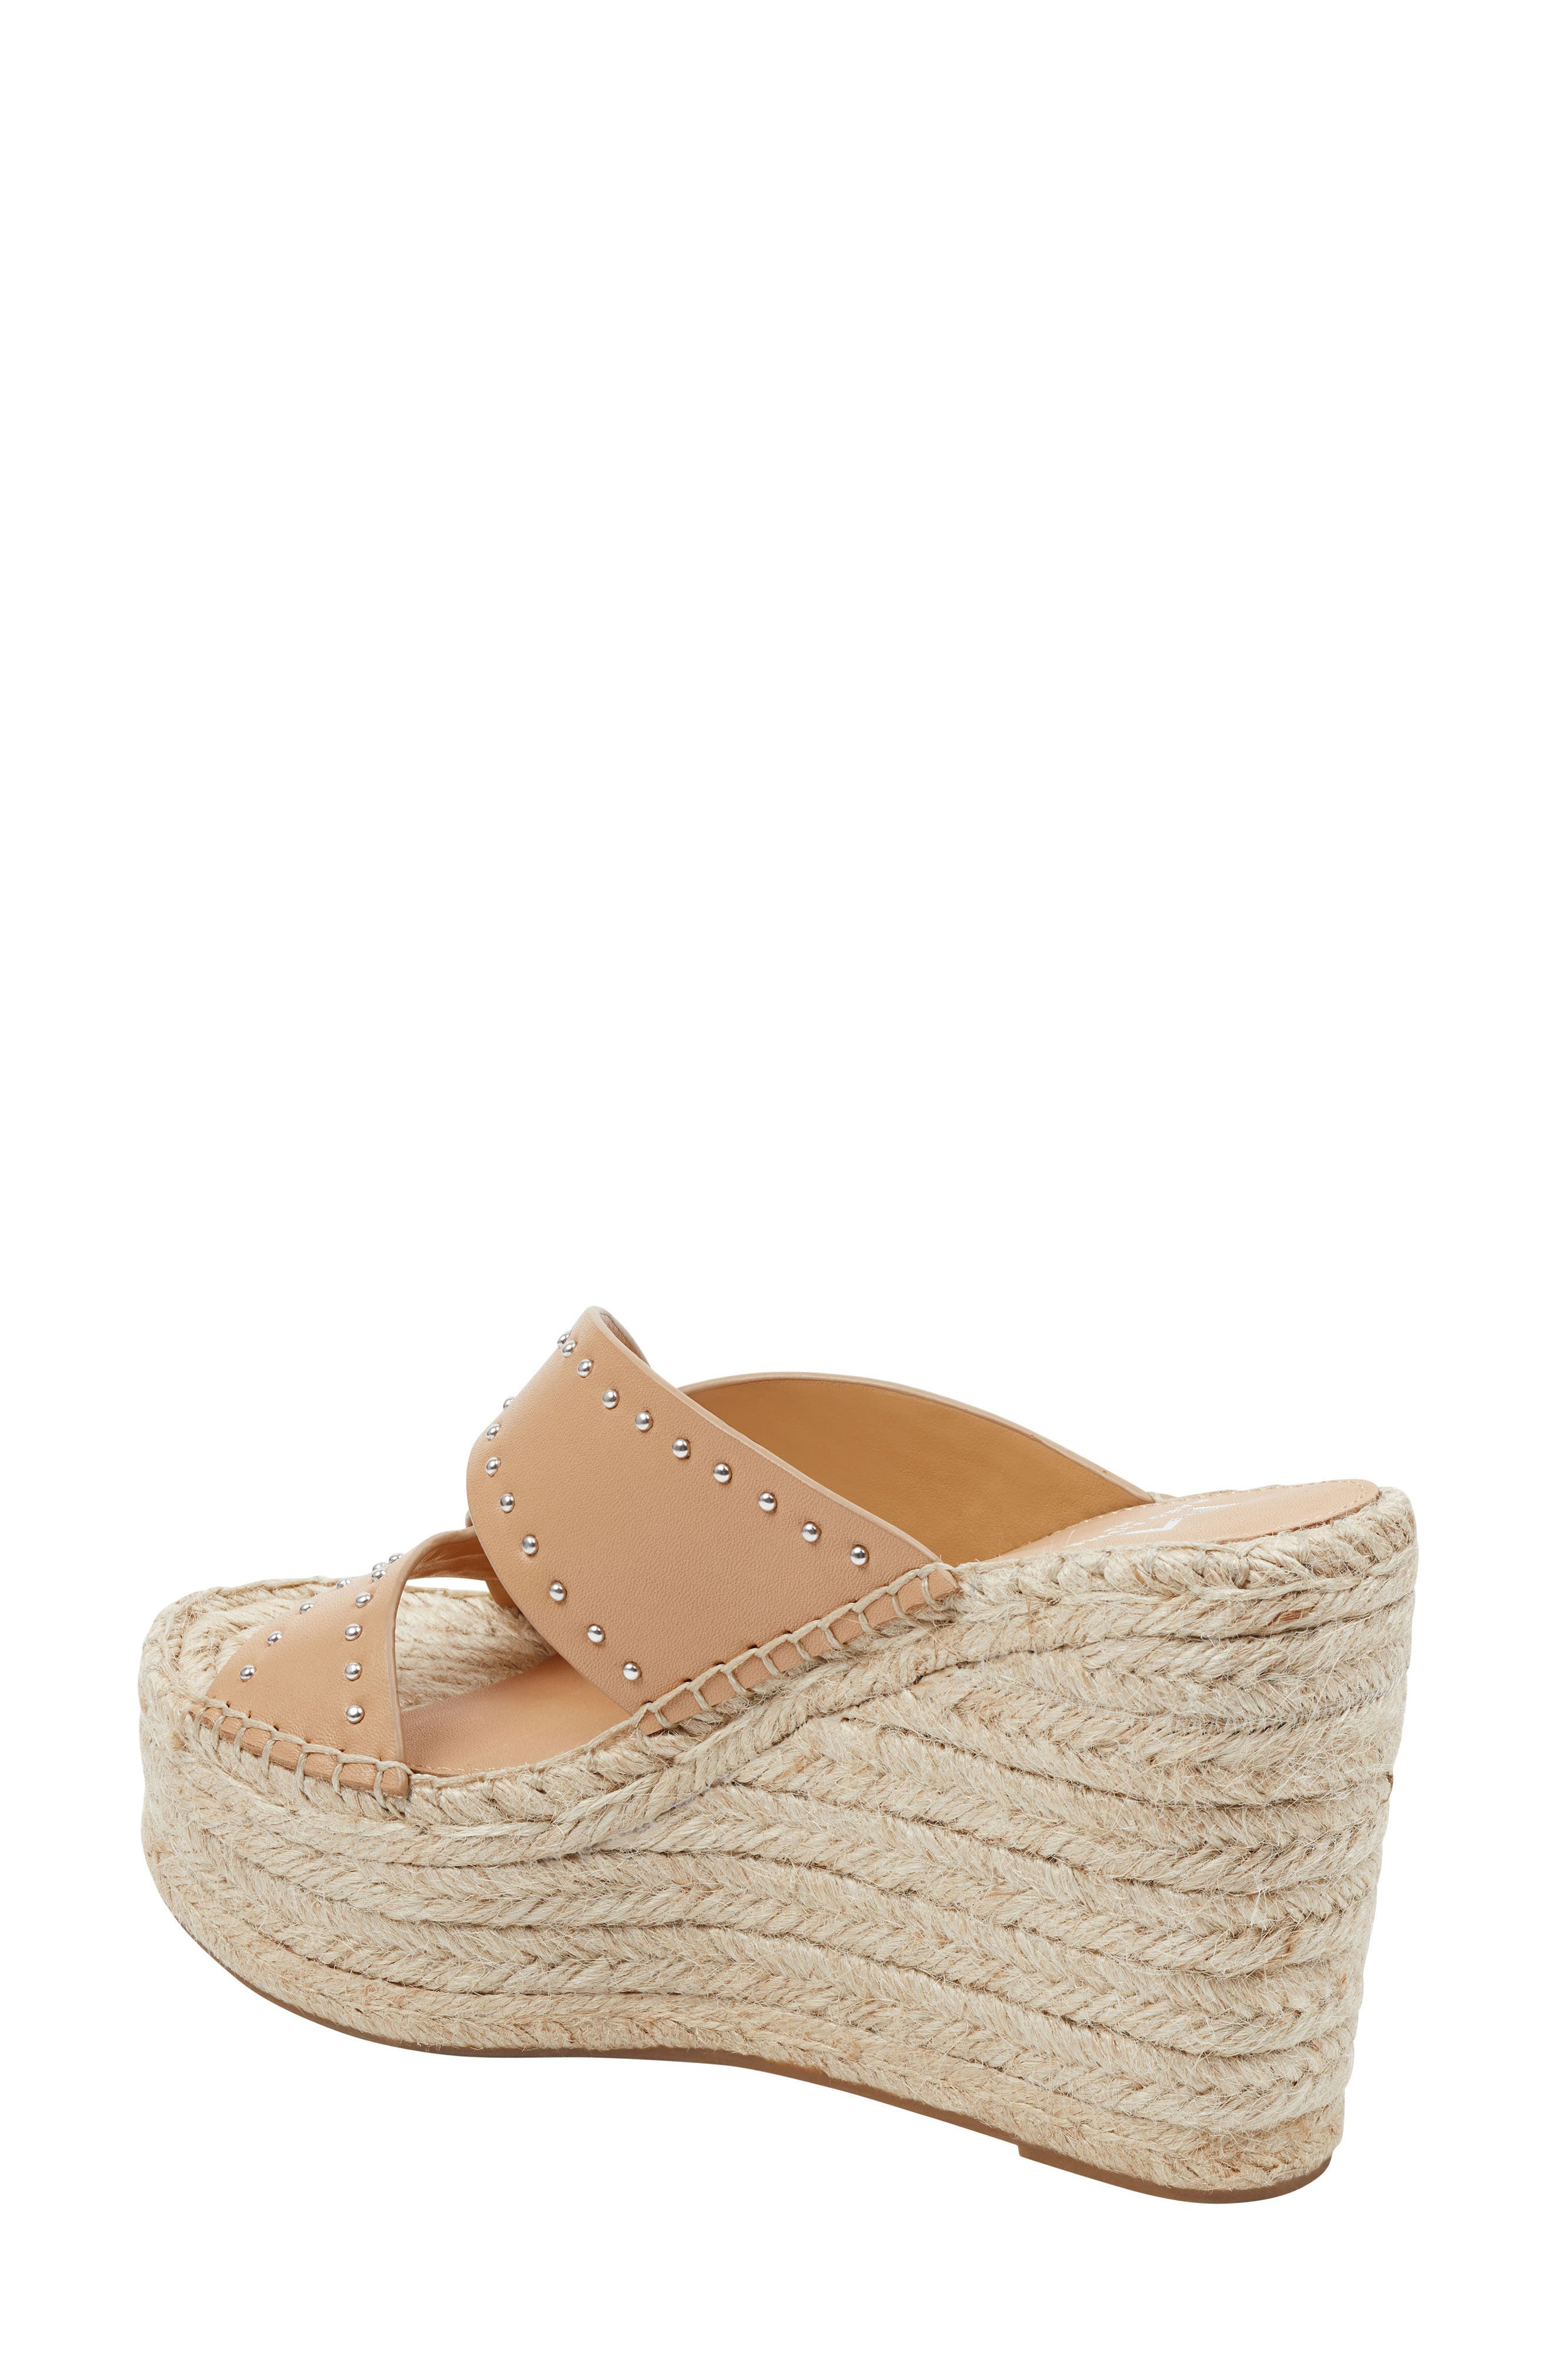 MARC FISHER LTD, Angelina Espadrille Wedge, Alternate thumbnail 2, color, TAN LEATHER